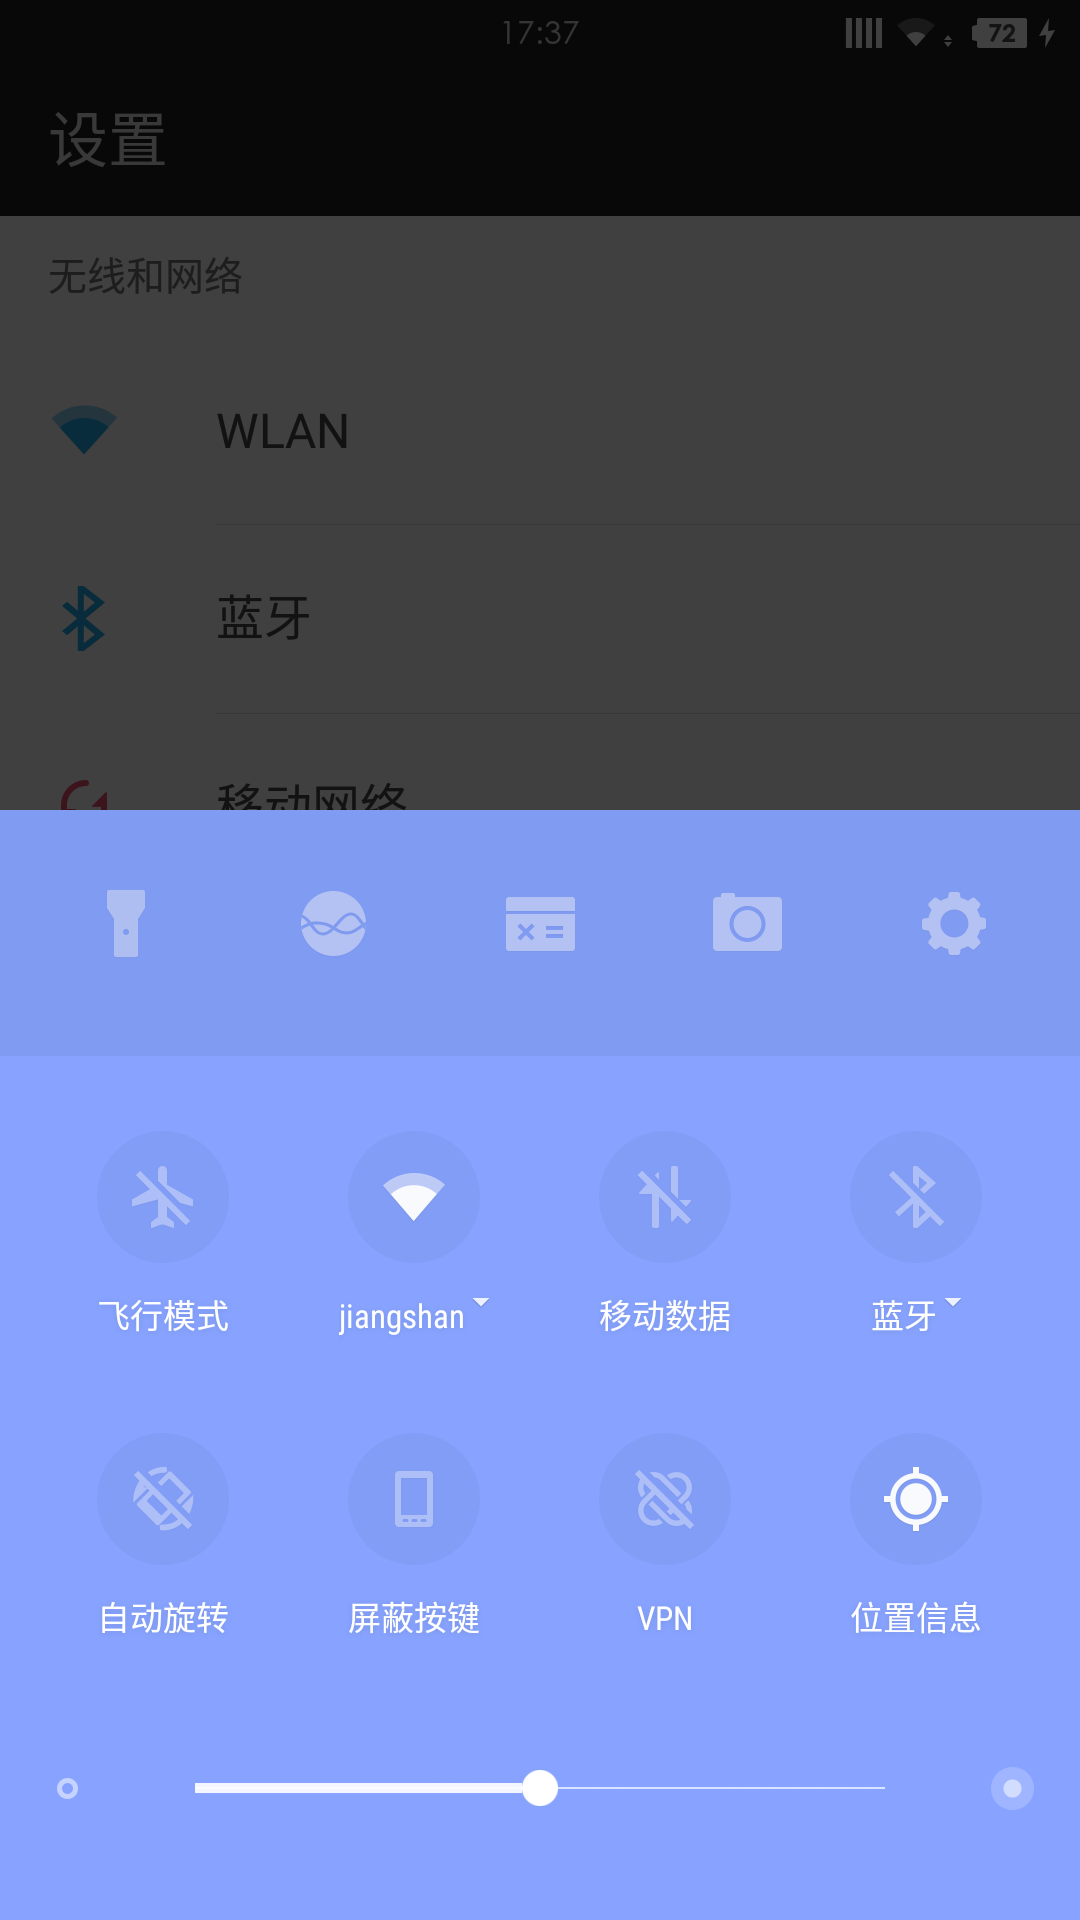 Screenshot_2015-09-12-17-37-45.png